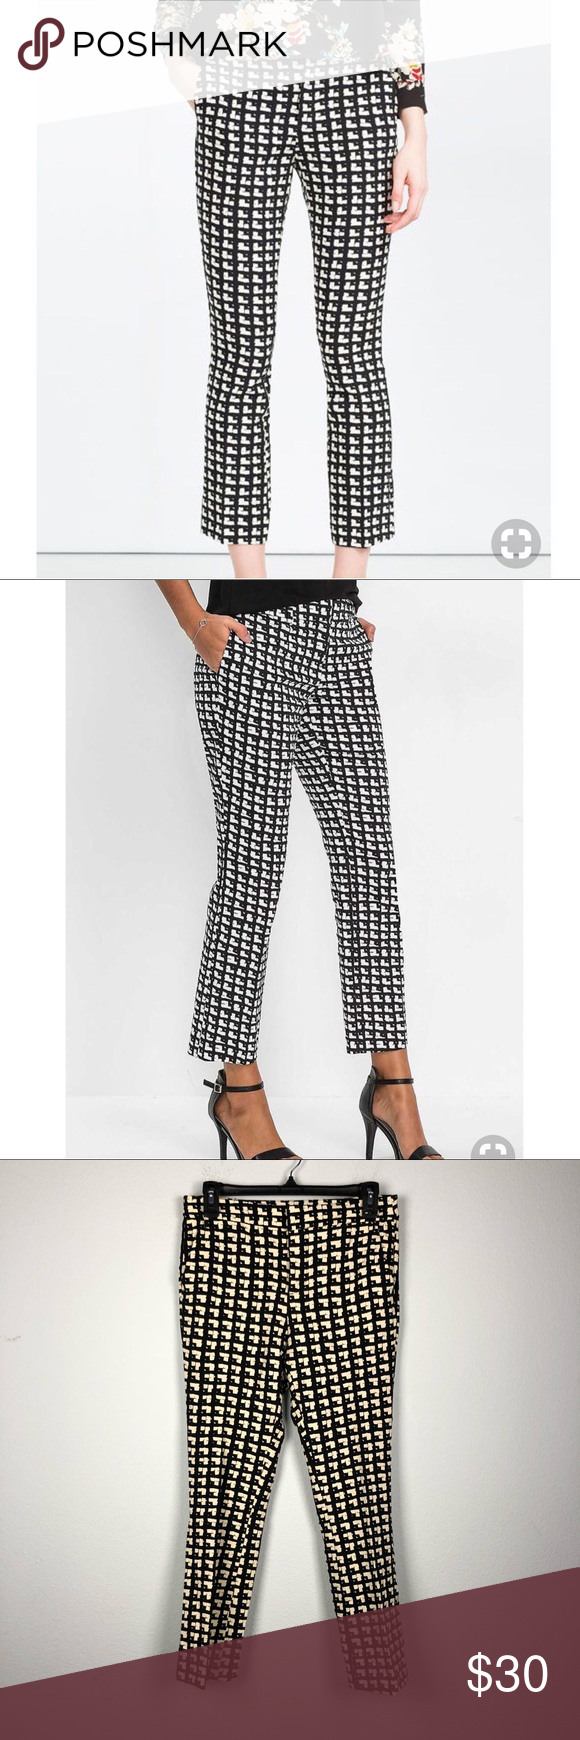 Zara Black And White Printed Crop Flare Trousers Zara Black And White Patterned Crop Flare Trouser Pants Zip Fly And Button Clo Cropped Flares Zara Black Zara